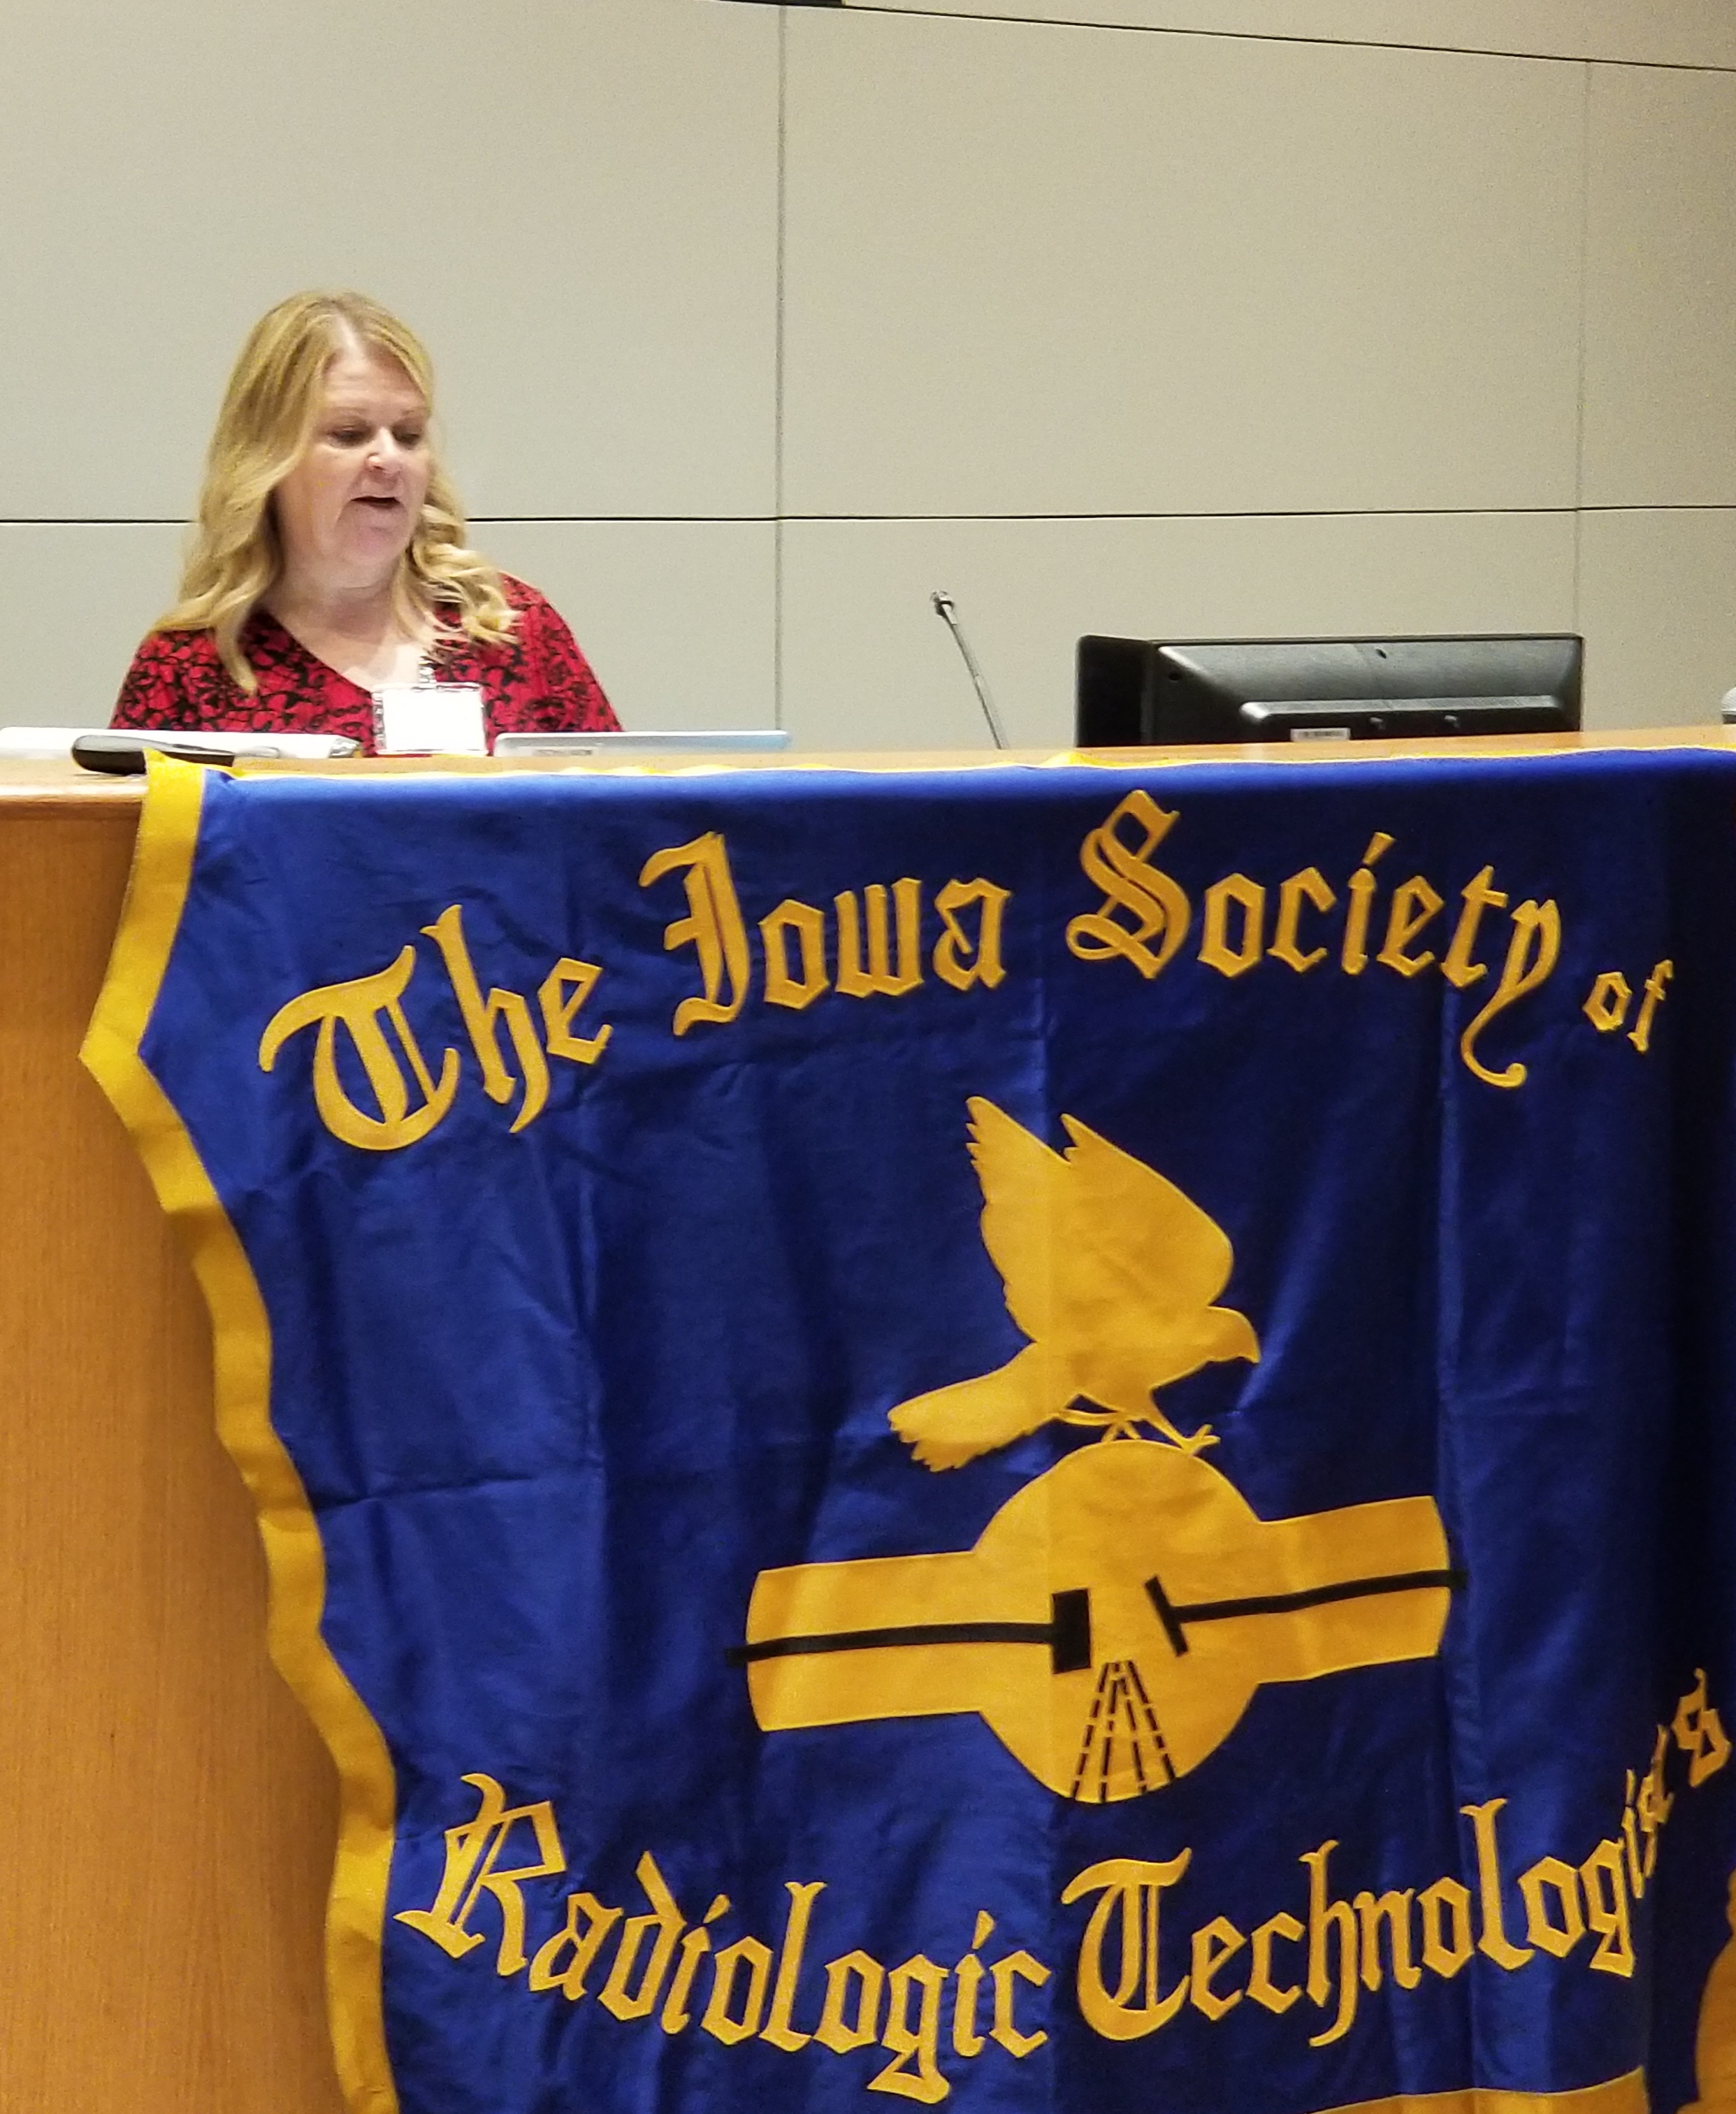 Annual Conference - Iowa Society of Radiologic Technologists